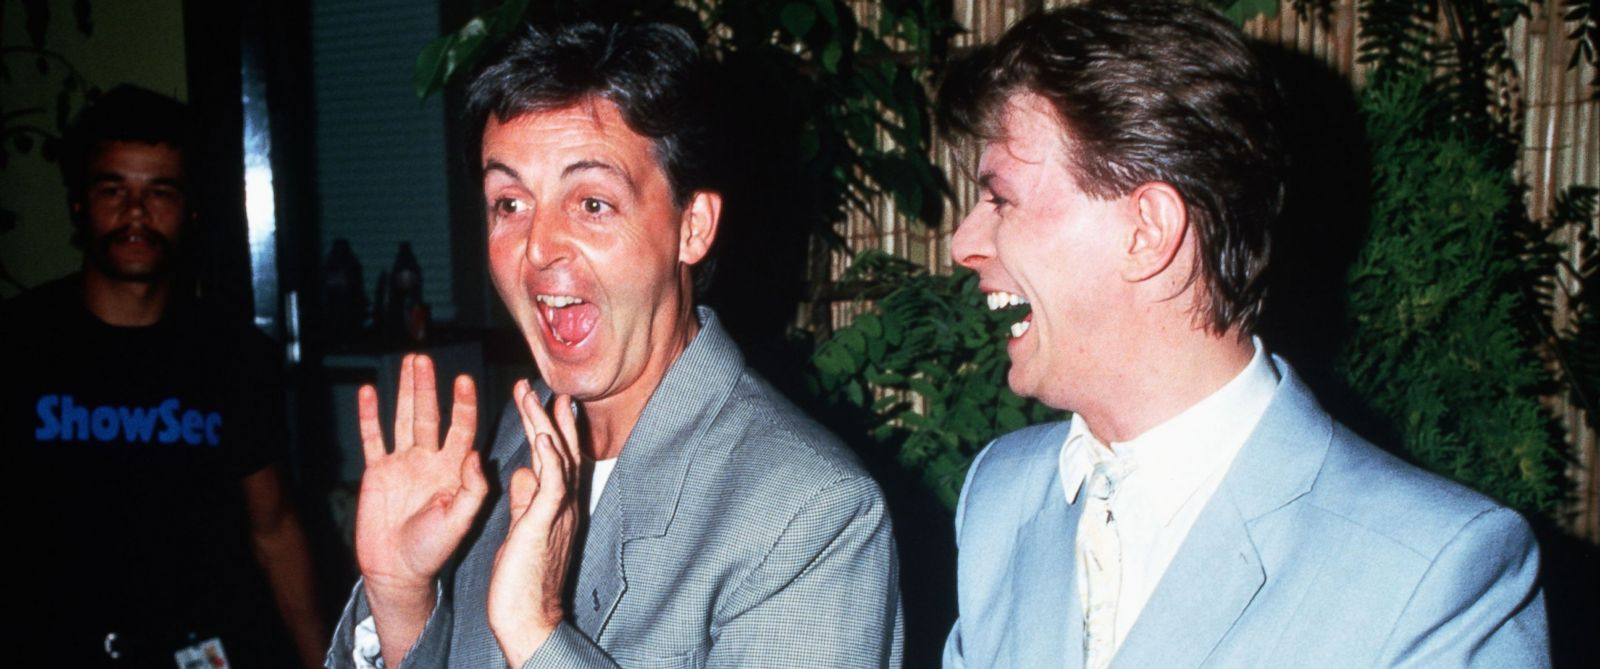 PHOTO: Musicians Paul McCartney and David Bowie are seen backstage at Live Aid in this July 13, 1985 file photo.